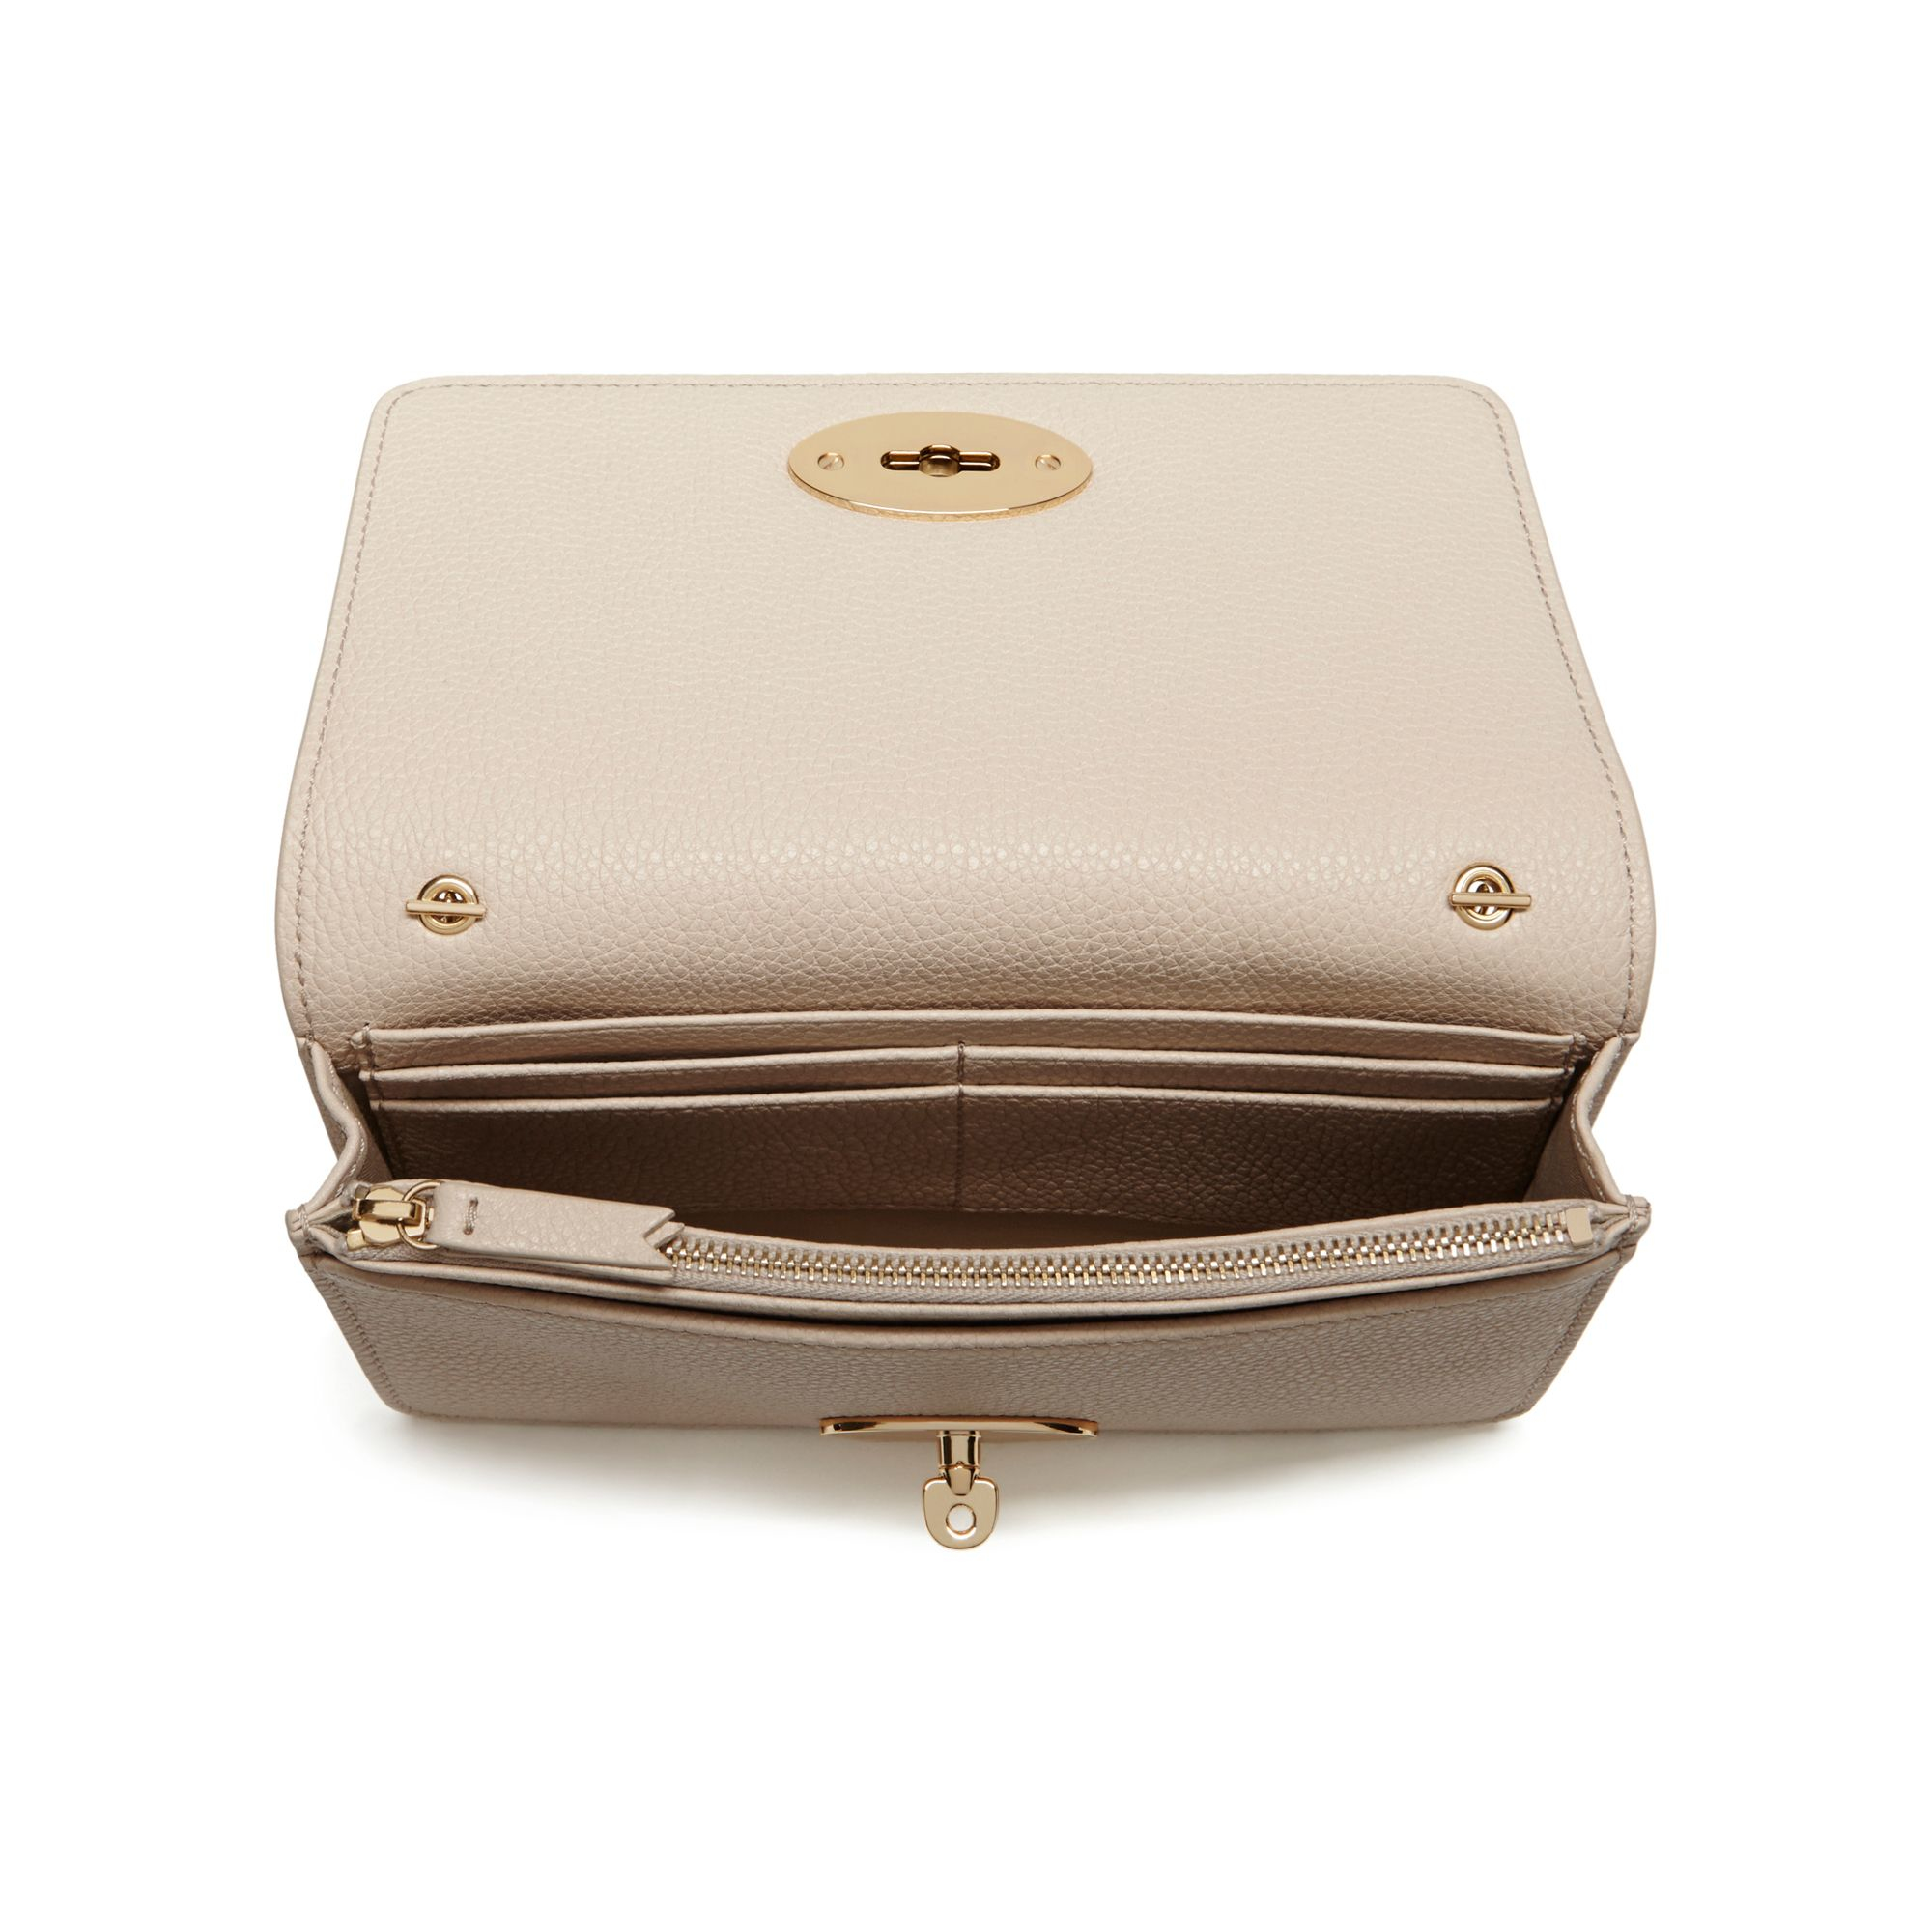 30fc32e65f where to buy mulberry bayswater clutch wallet on chain for sale 178b1 d5452